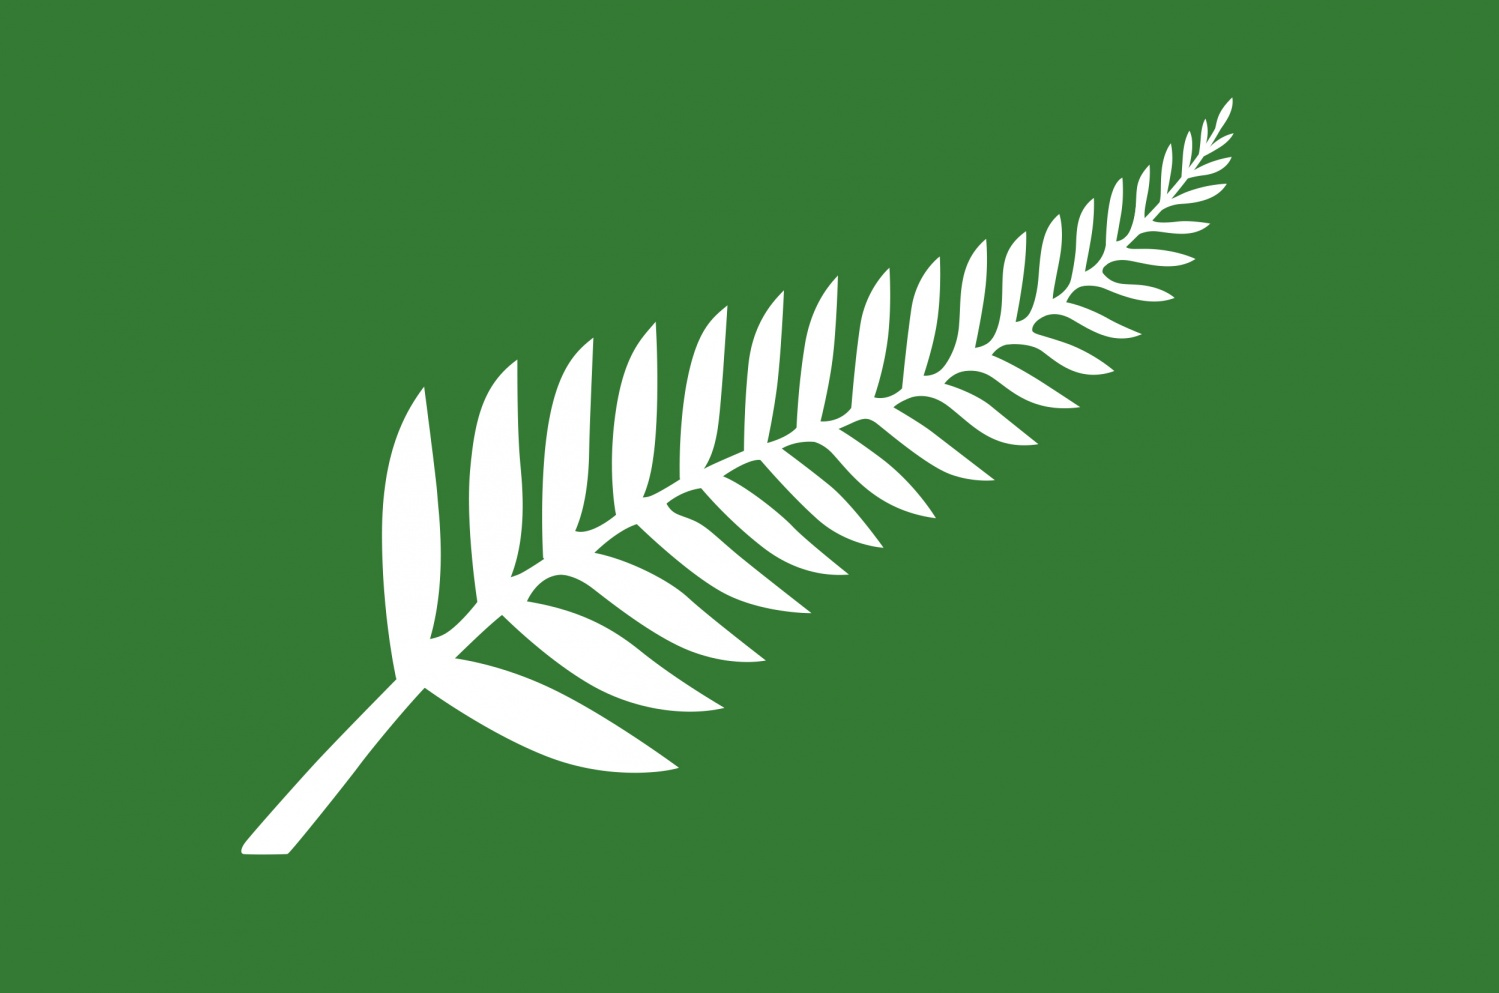 filenz flag design silver fern green by roger clarkejpg - Flag Design Ideas